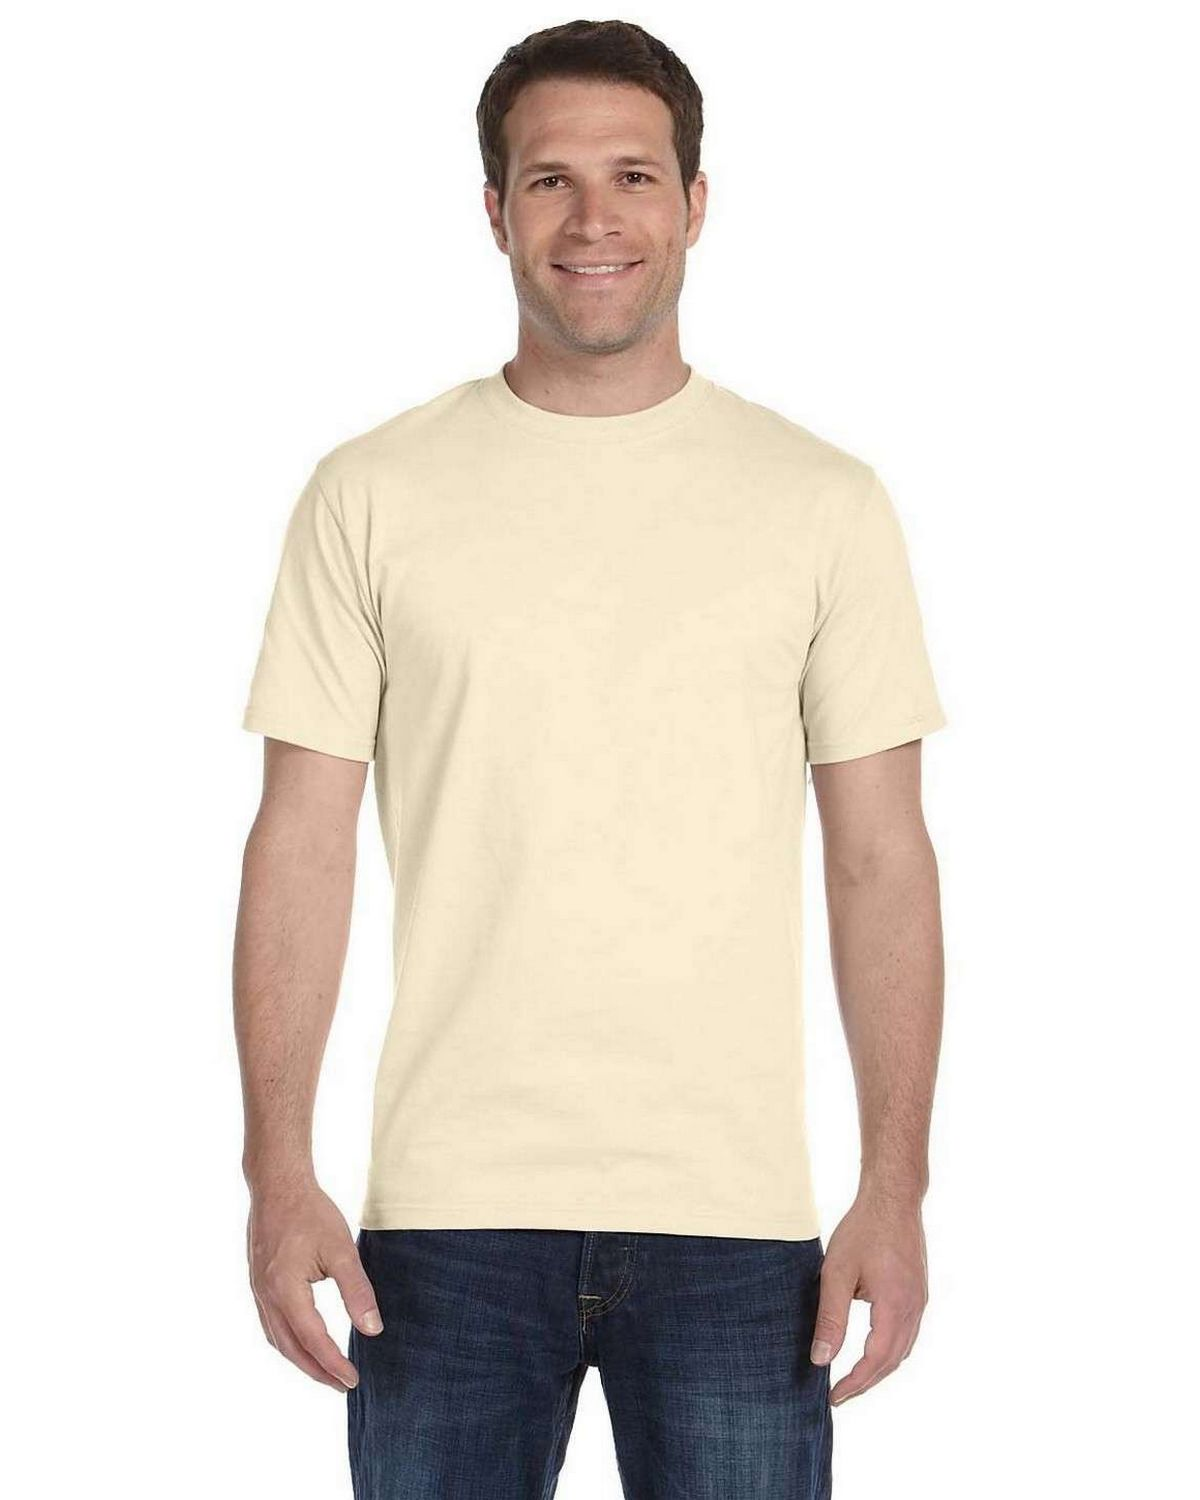 Hanes 5180 ringspun cotton beefy t shirt for Hanes 5180 beefy t t shirt